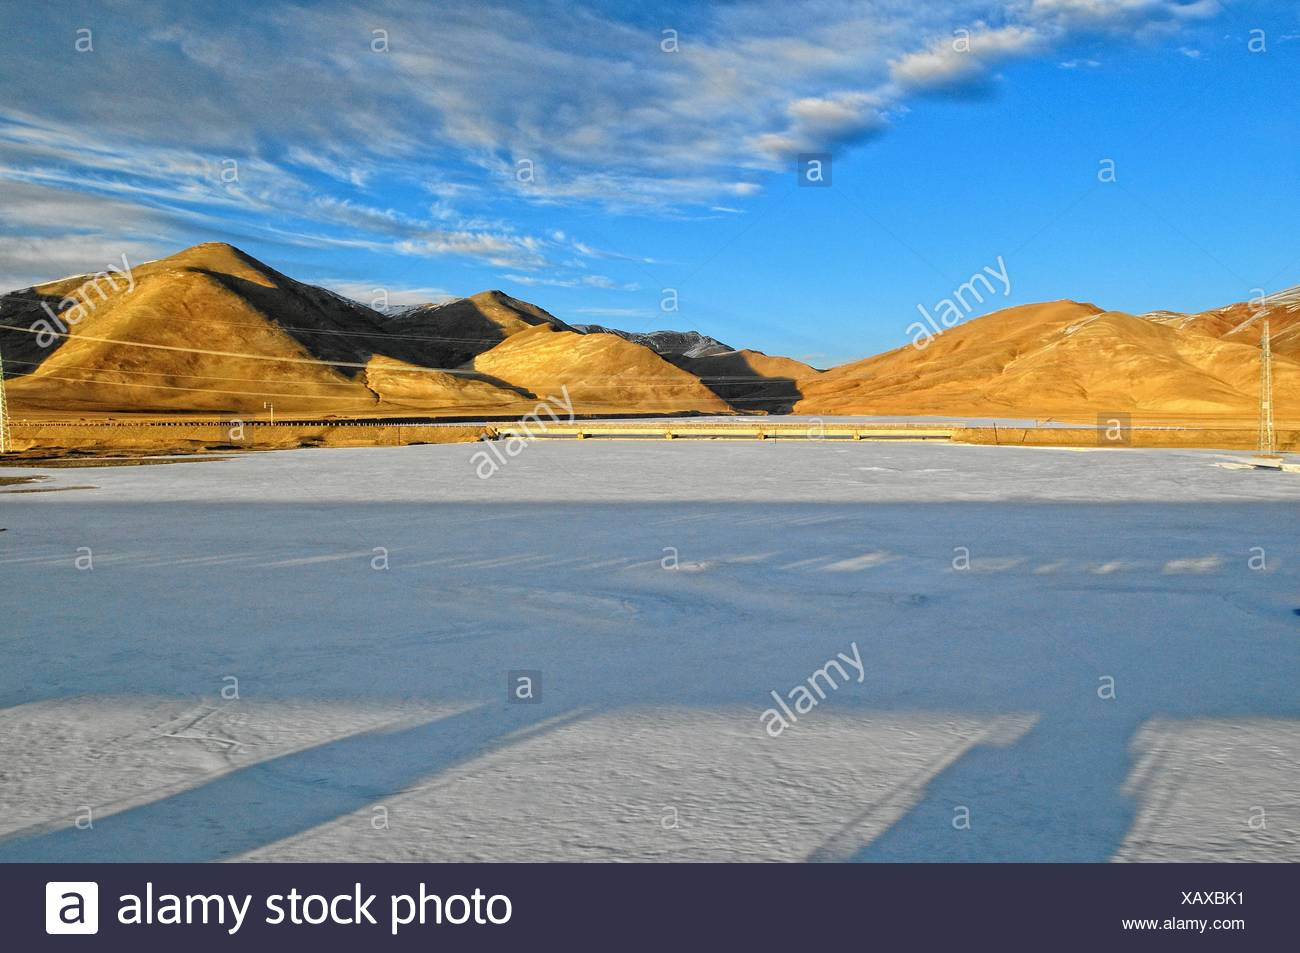 in the shadow of the Tibet railway Tibet China Stock Photo